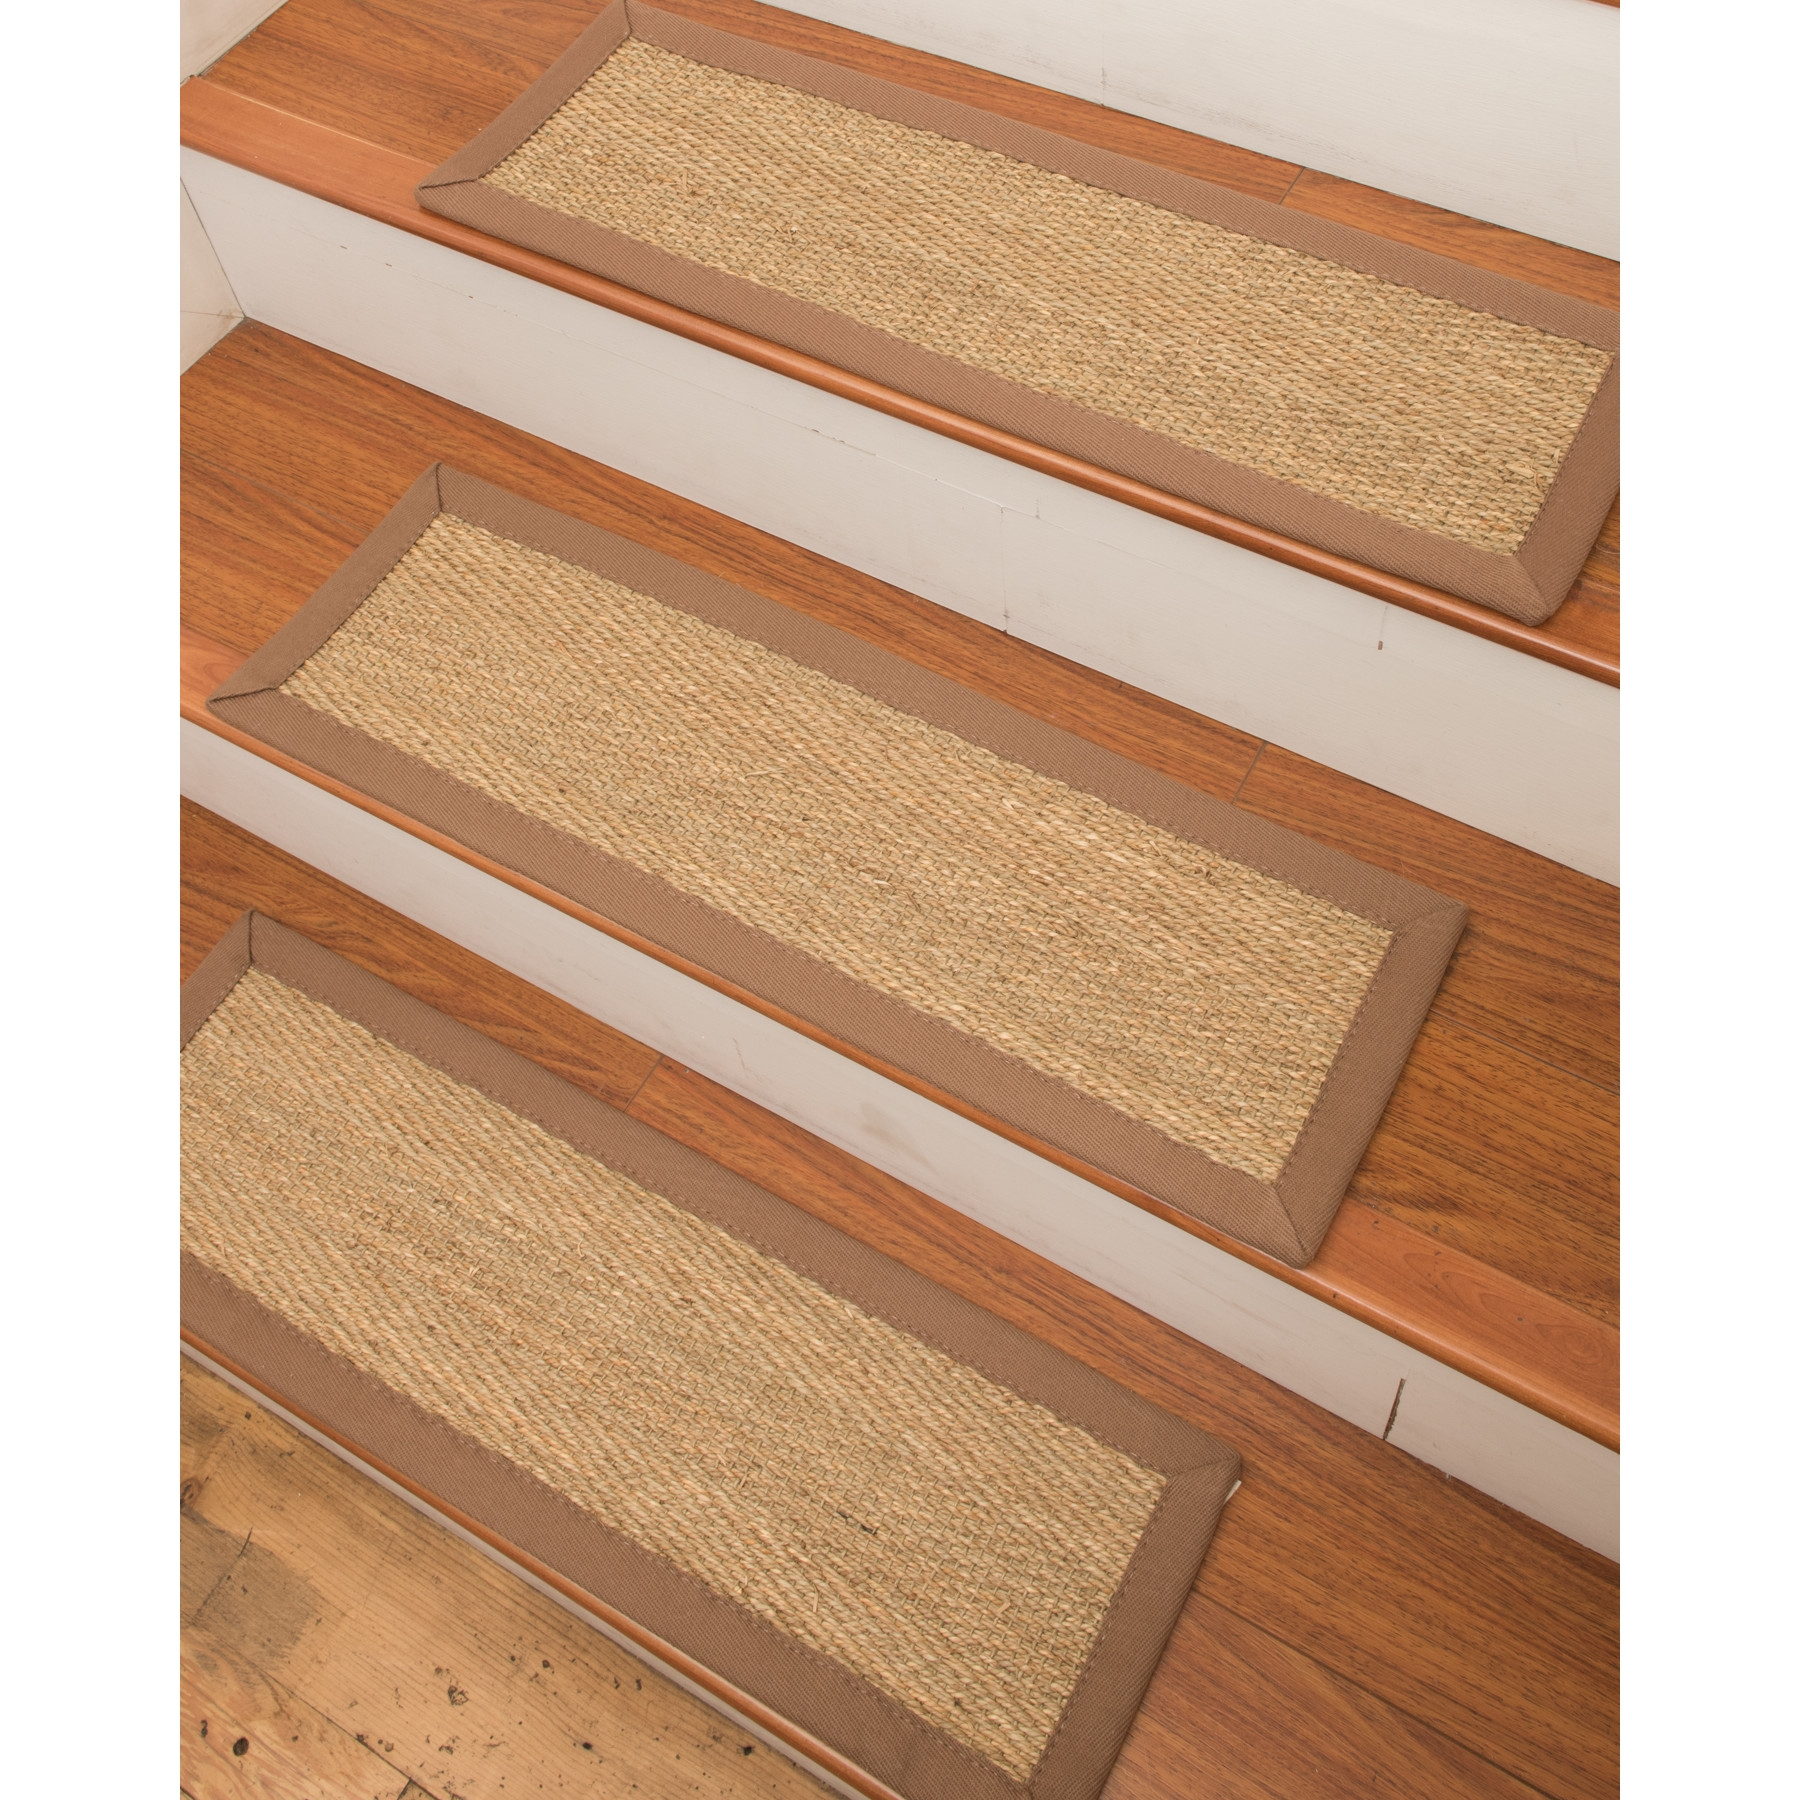 Natural Area Rugs Costa Rica Seagrass Carpet Beige Stair Tread With Stair Tread Rug Liners (View 15 of 15)